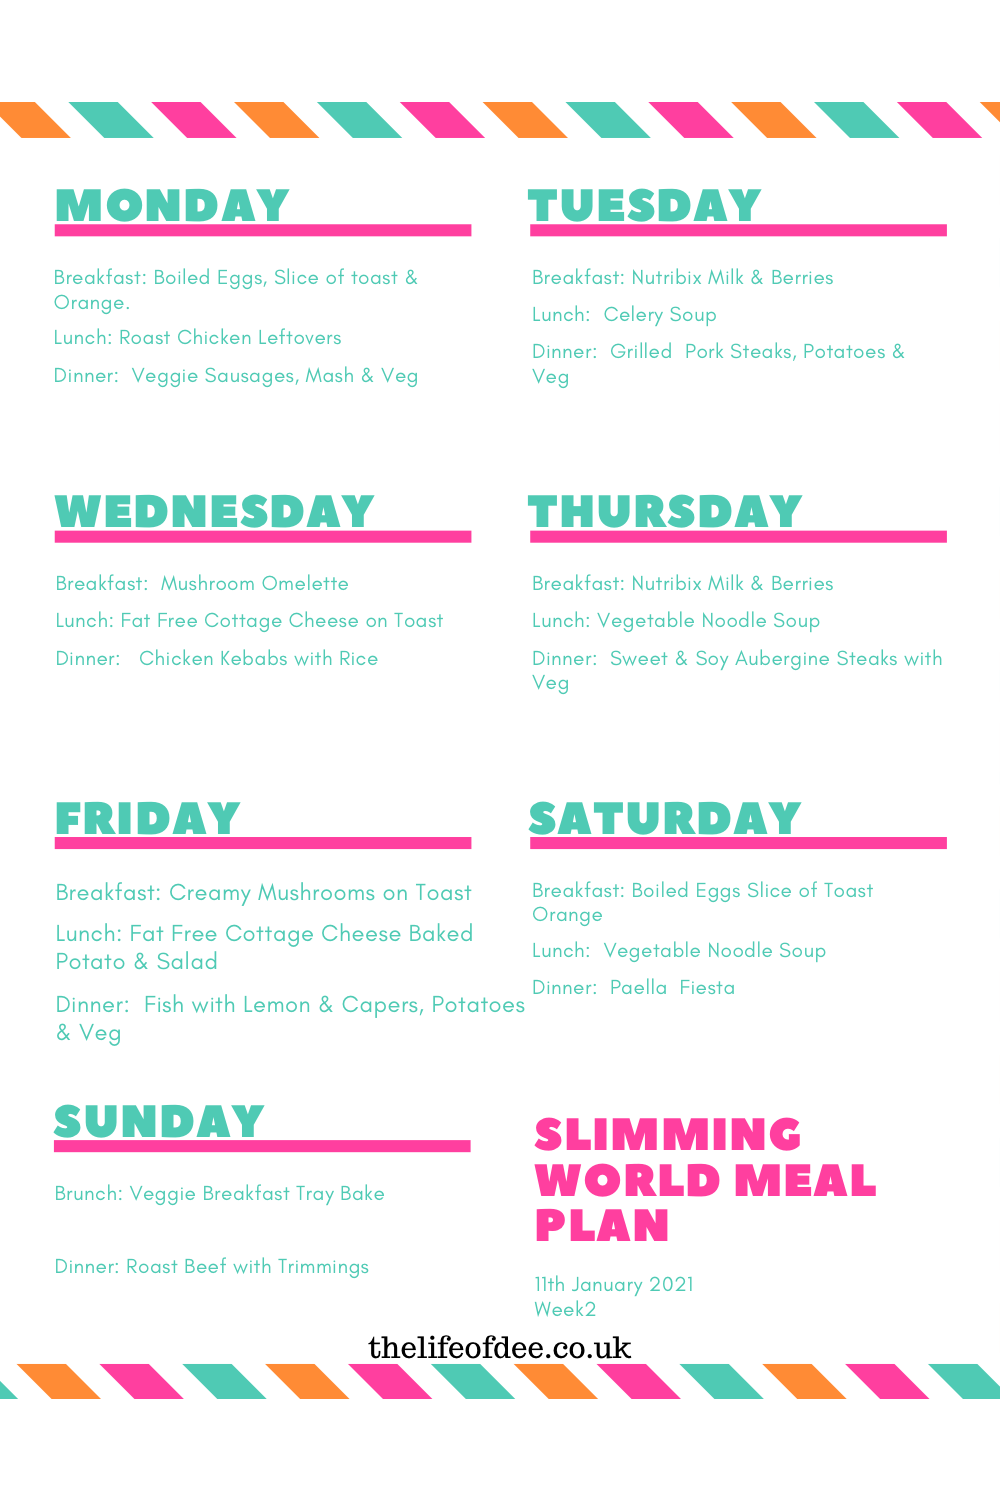 Slimming World Meal Plan 11th January | Looking for #Slimming #World #Meal #Ideas. This #meal #plan is following the #slimming #world diet